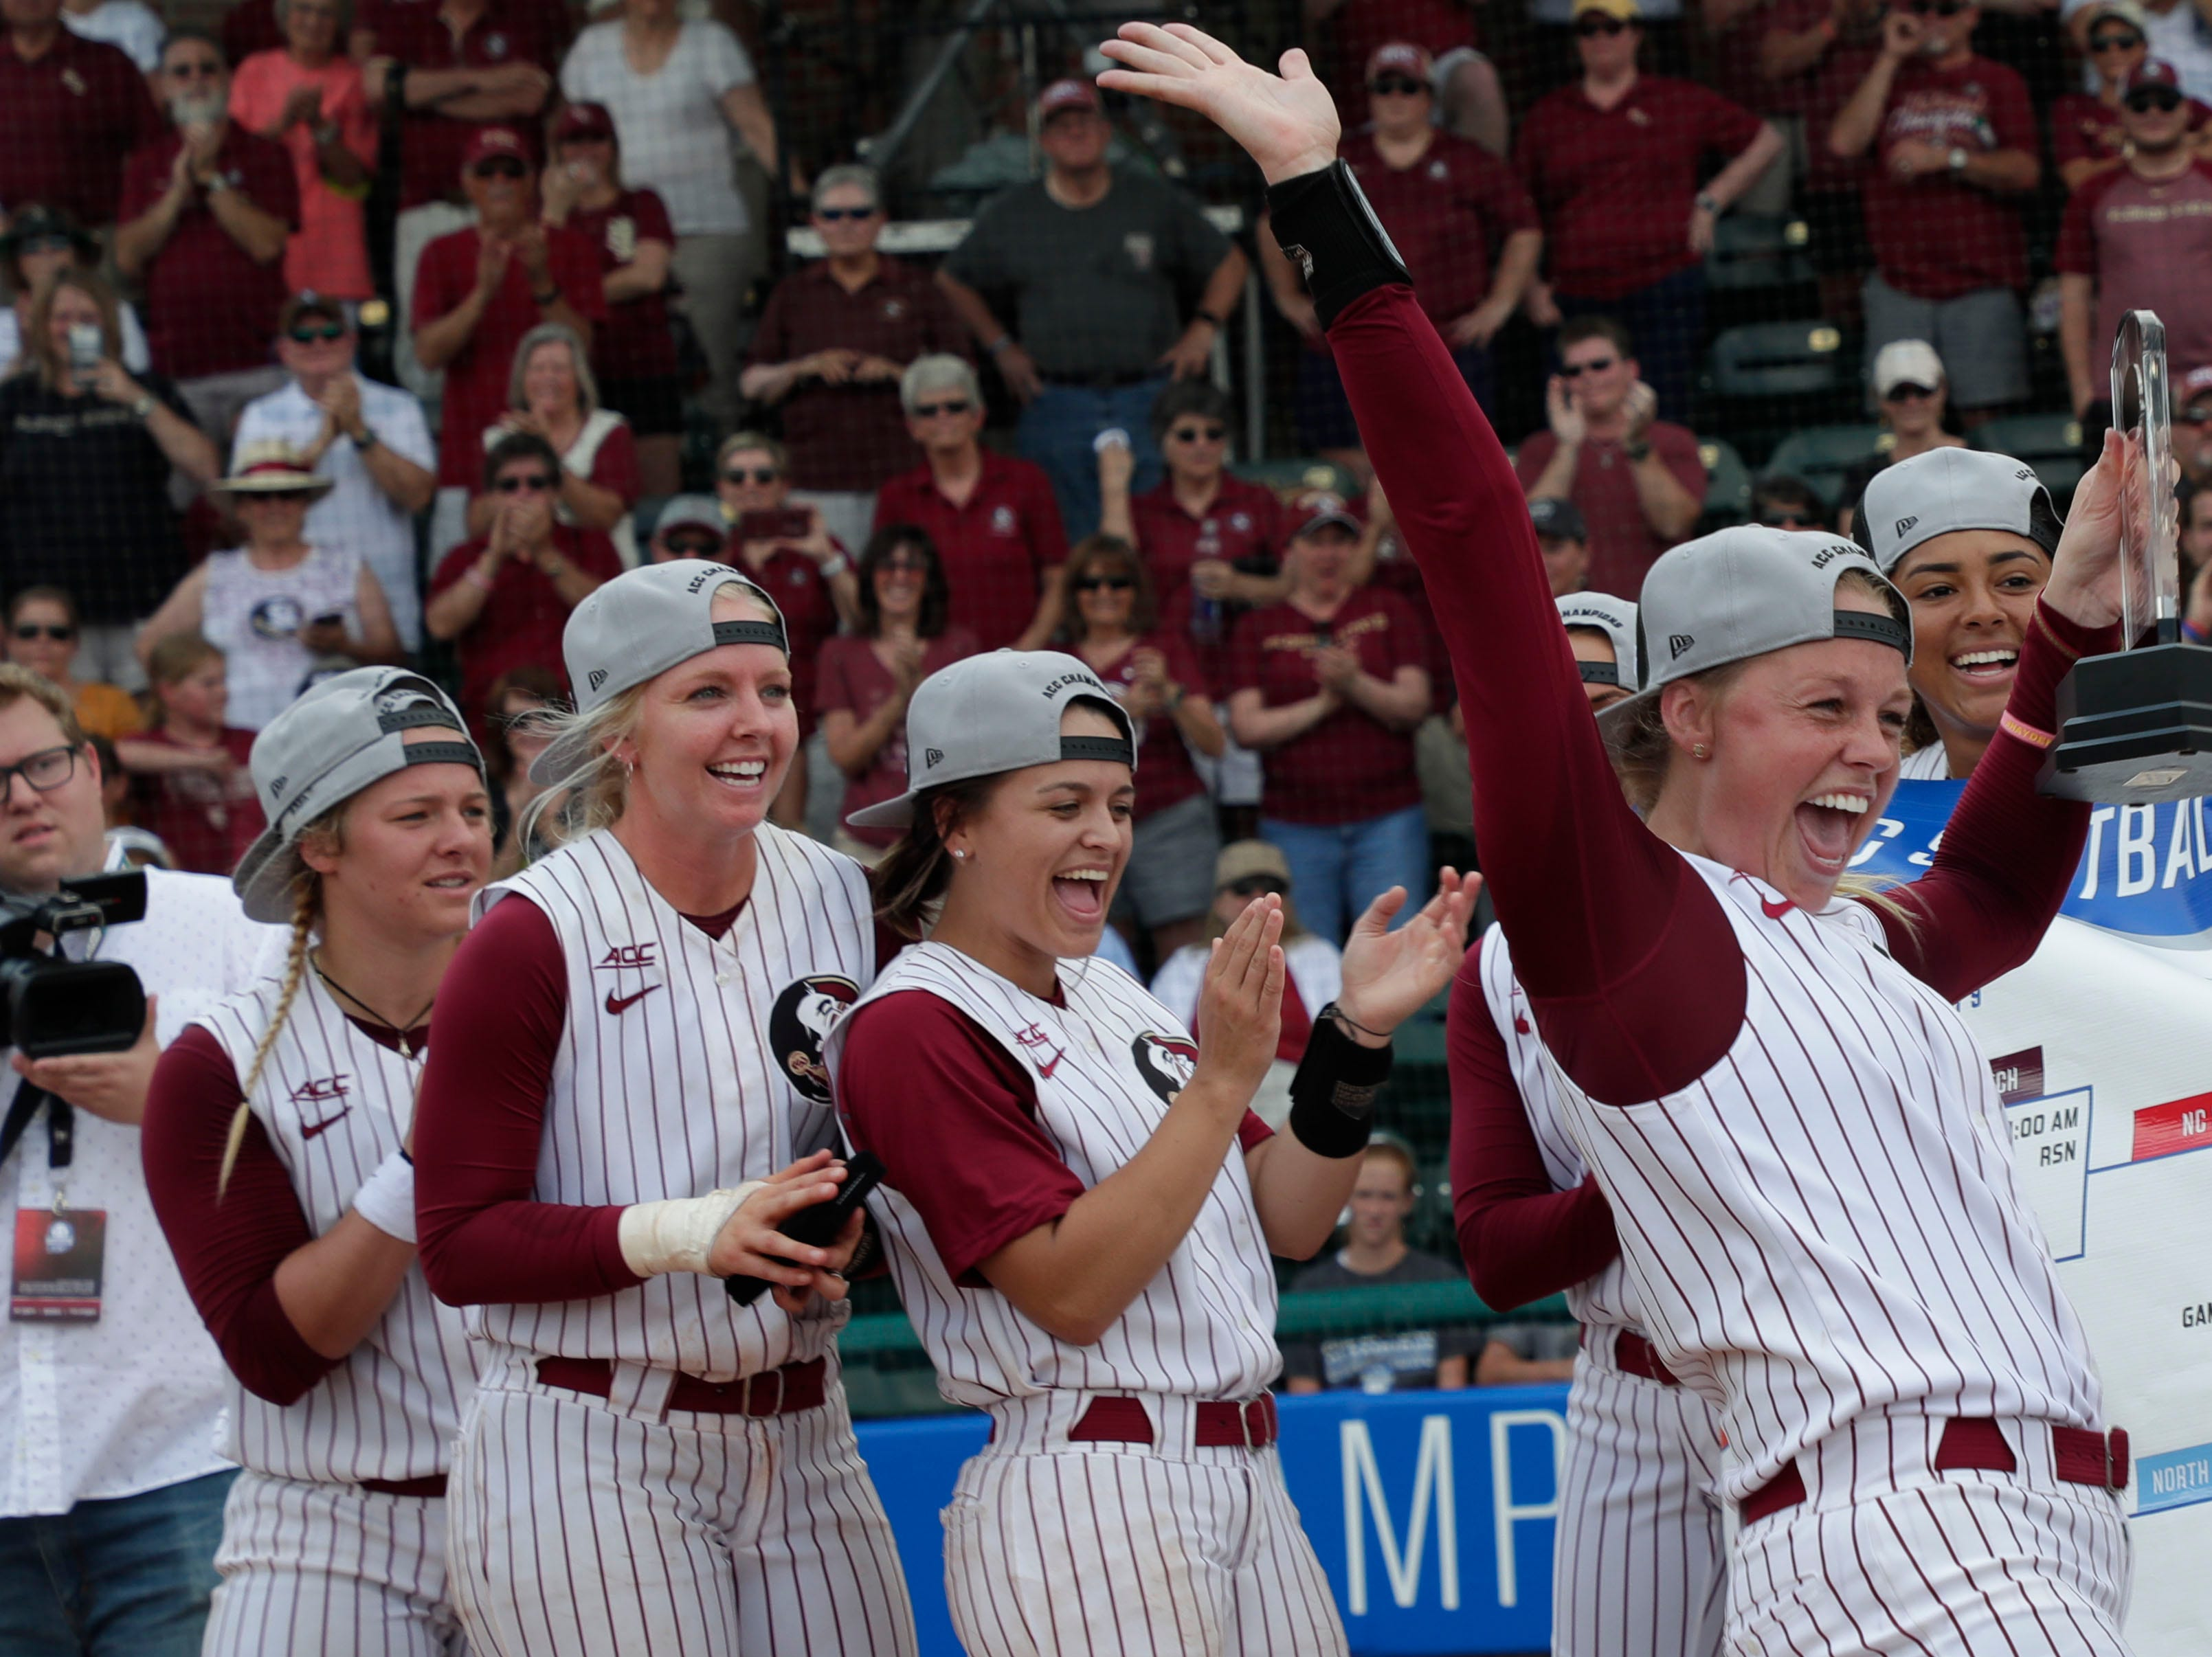 Florida State Seminoles starting pitcher/relief pitcher Meghan King (48) and her teammates cheer. The Florida State Seminoles celebrate their victory over the UNC Tar Heels for the ACC Softball Championship title Saturday, May 11, 2019.